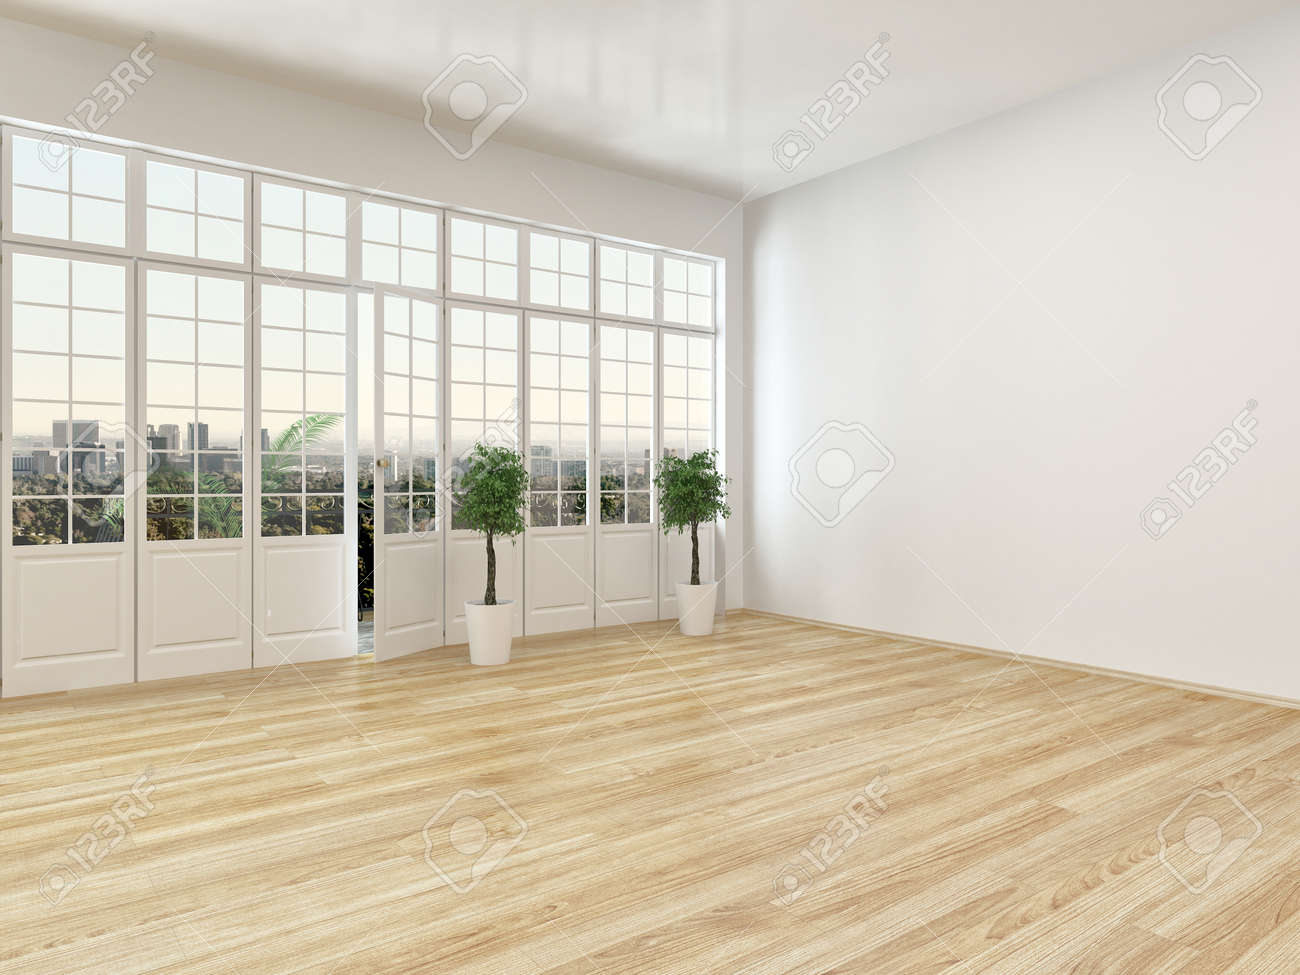 Great Empty Living Room Interior With Parquet Floor And A Large Panoramic View  Window With A Door